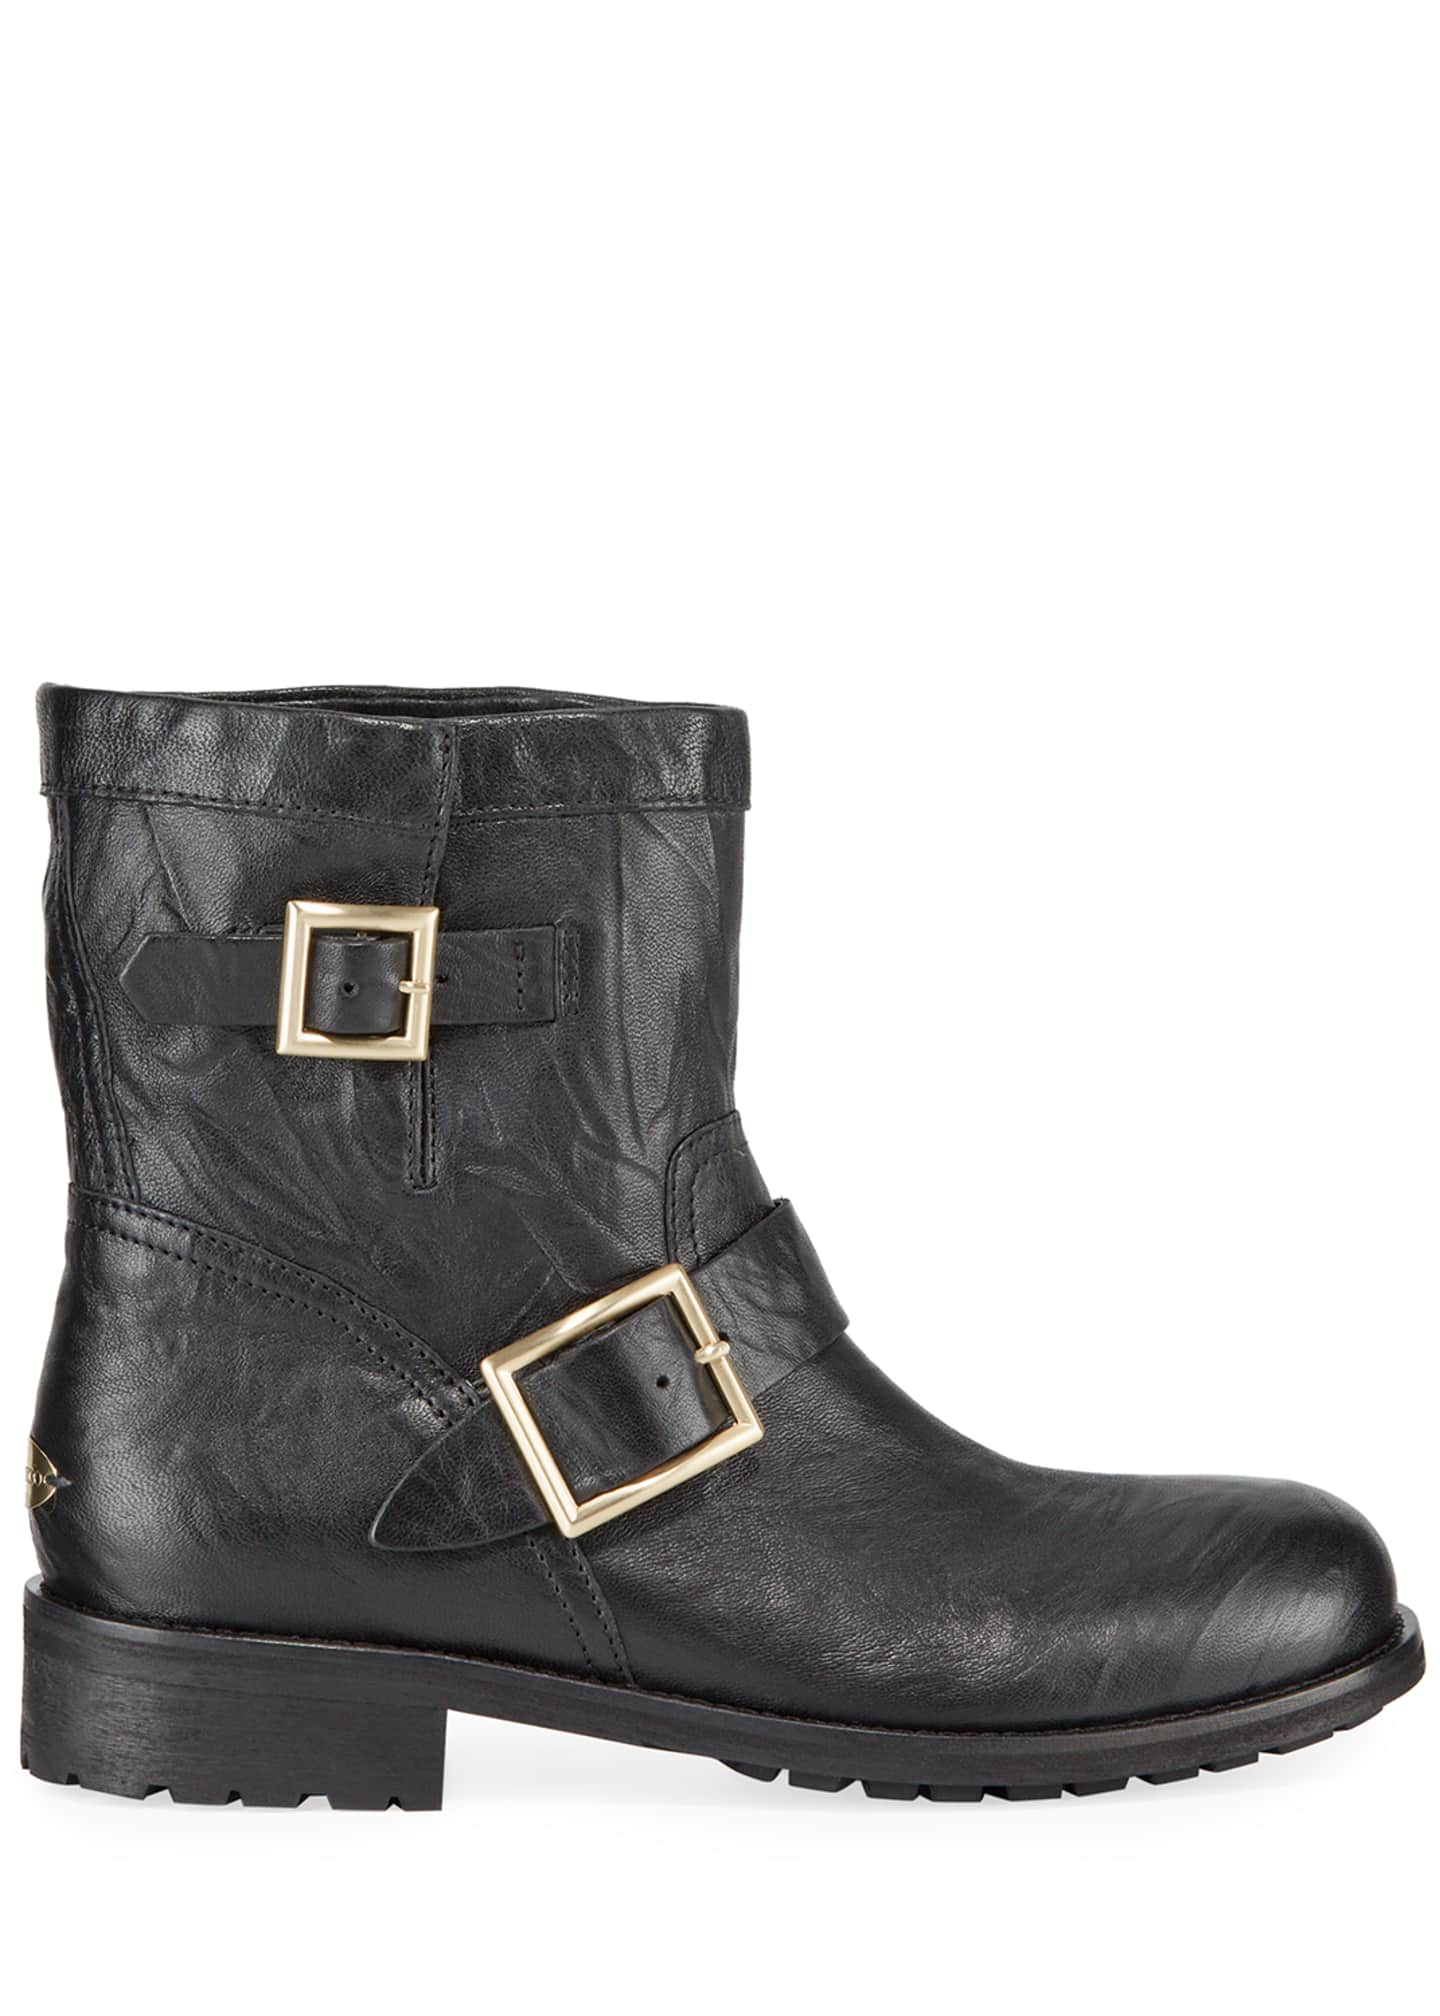 Image 2 of 3: Youth Leather Biker Boots